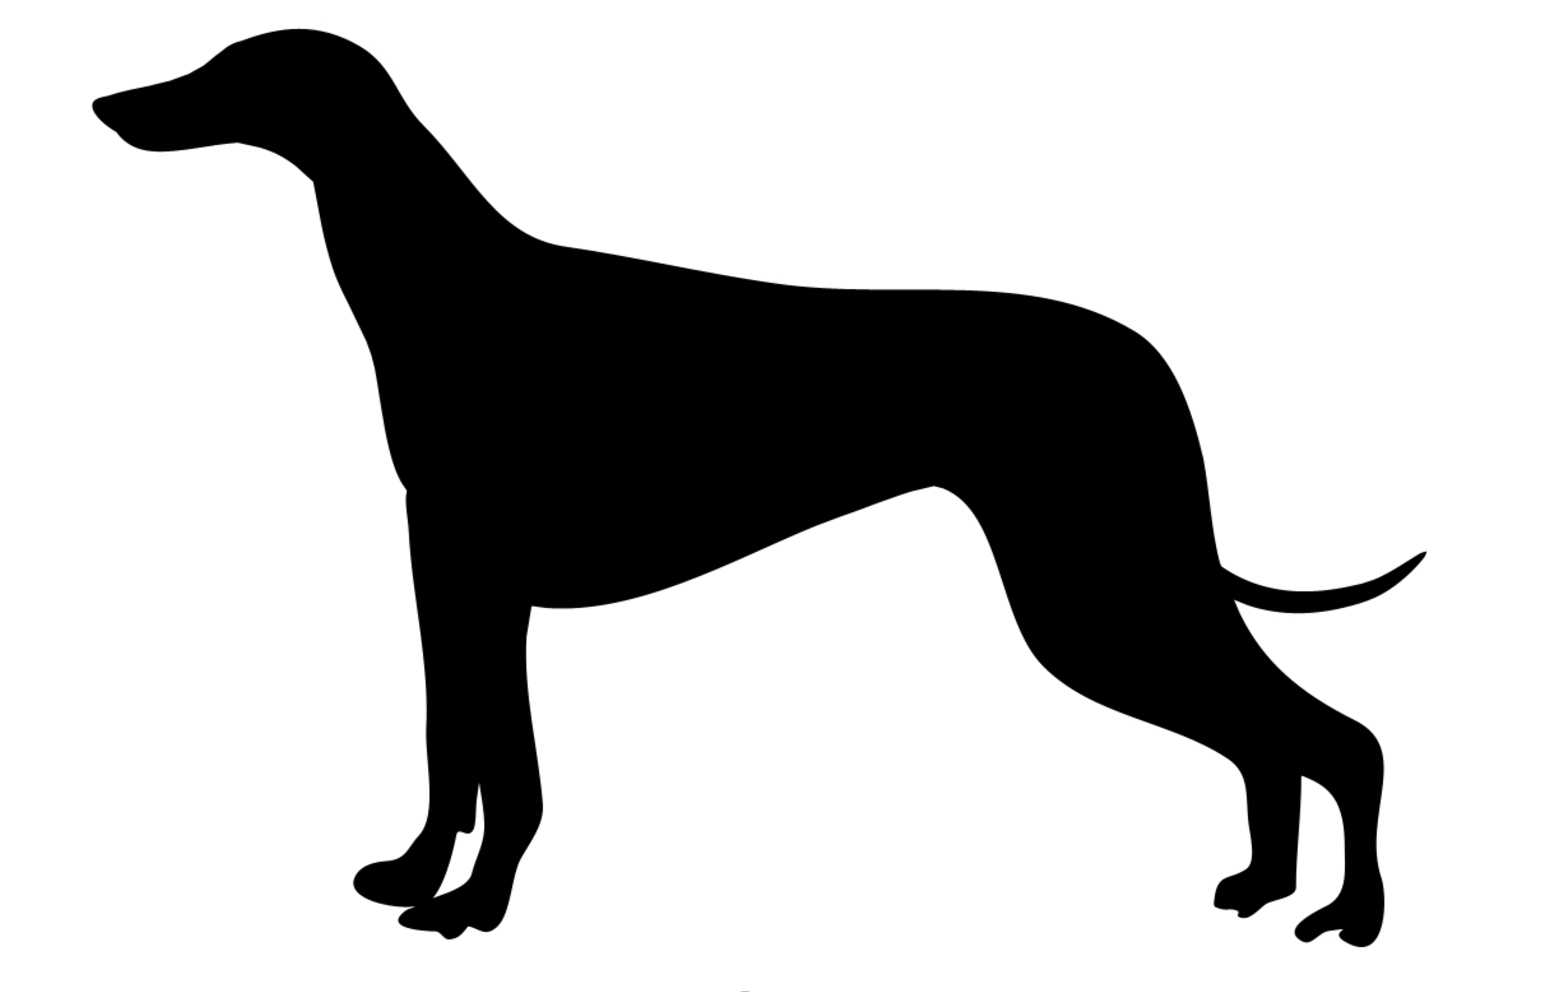 Black silhouette of generic sighthound dog